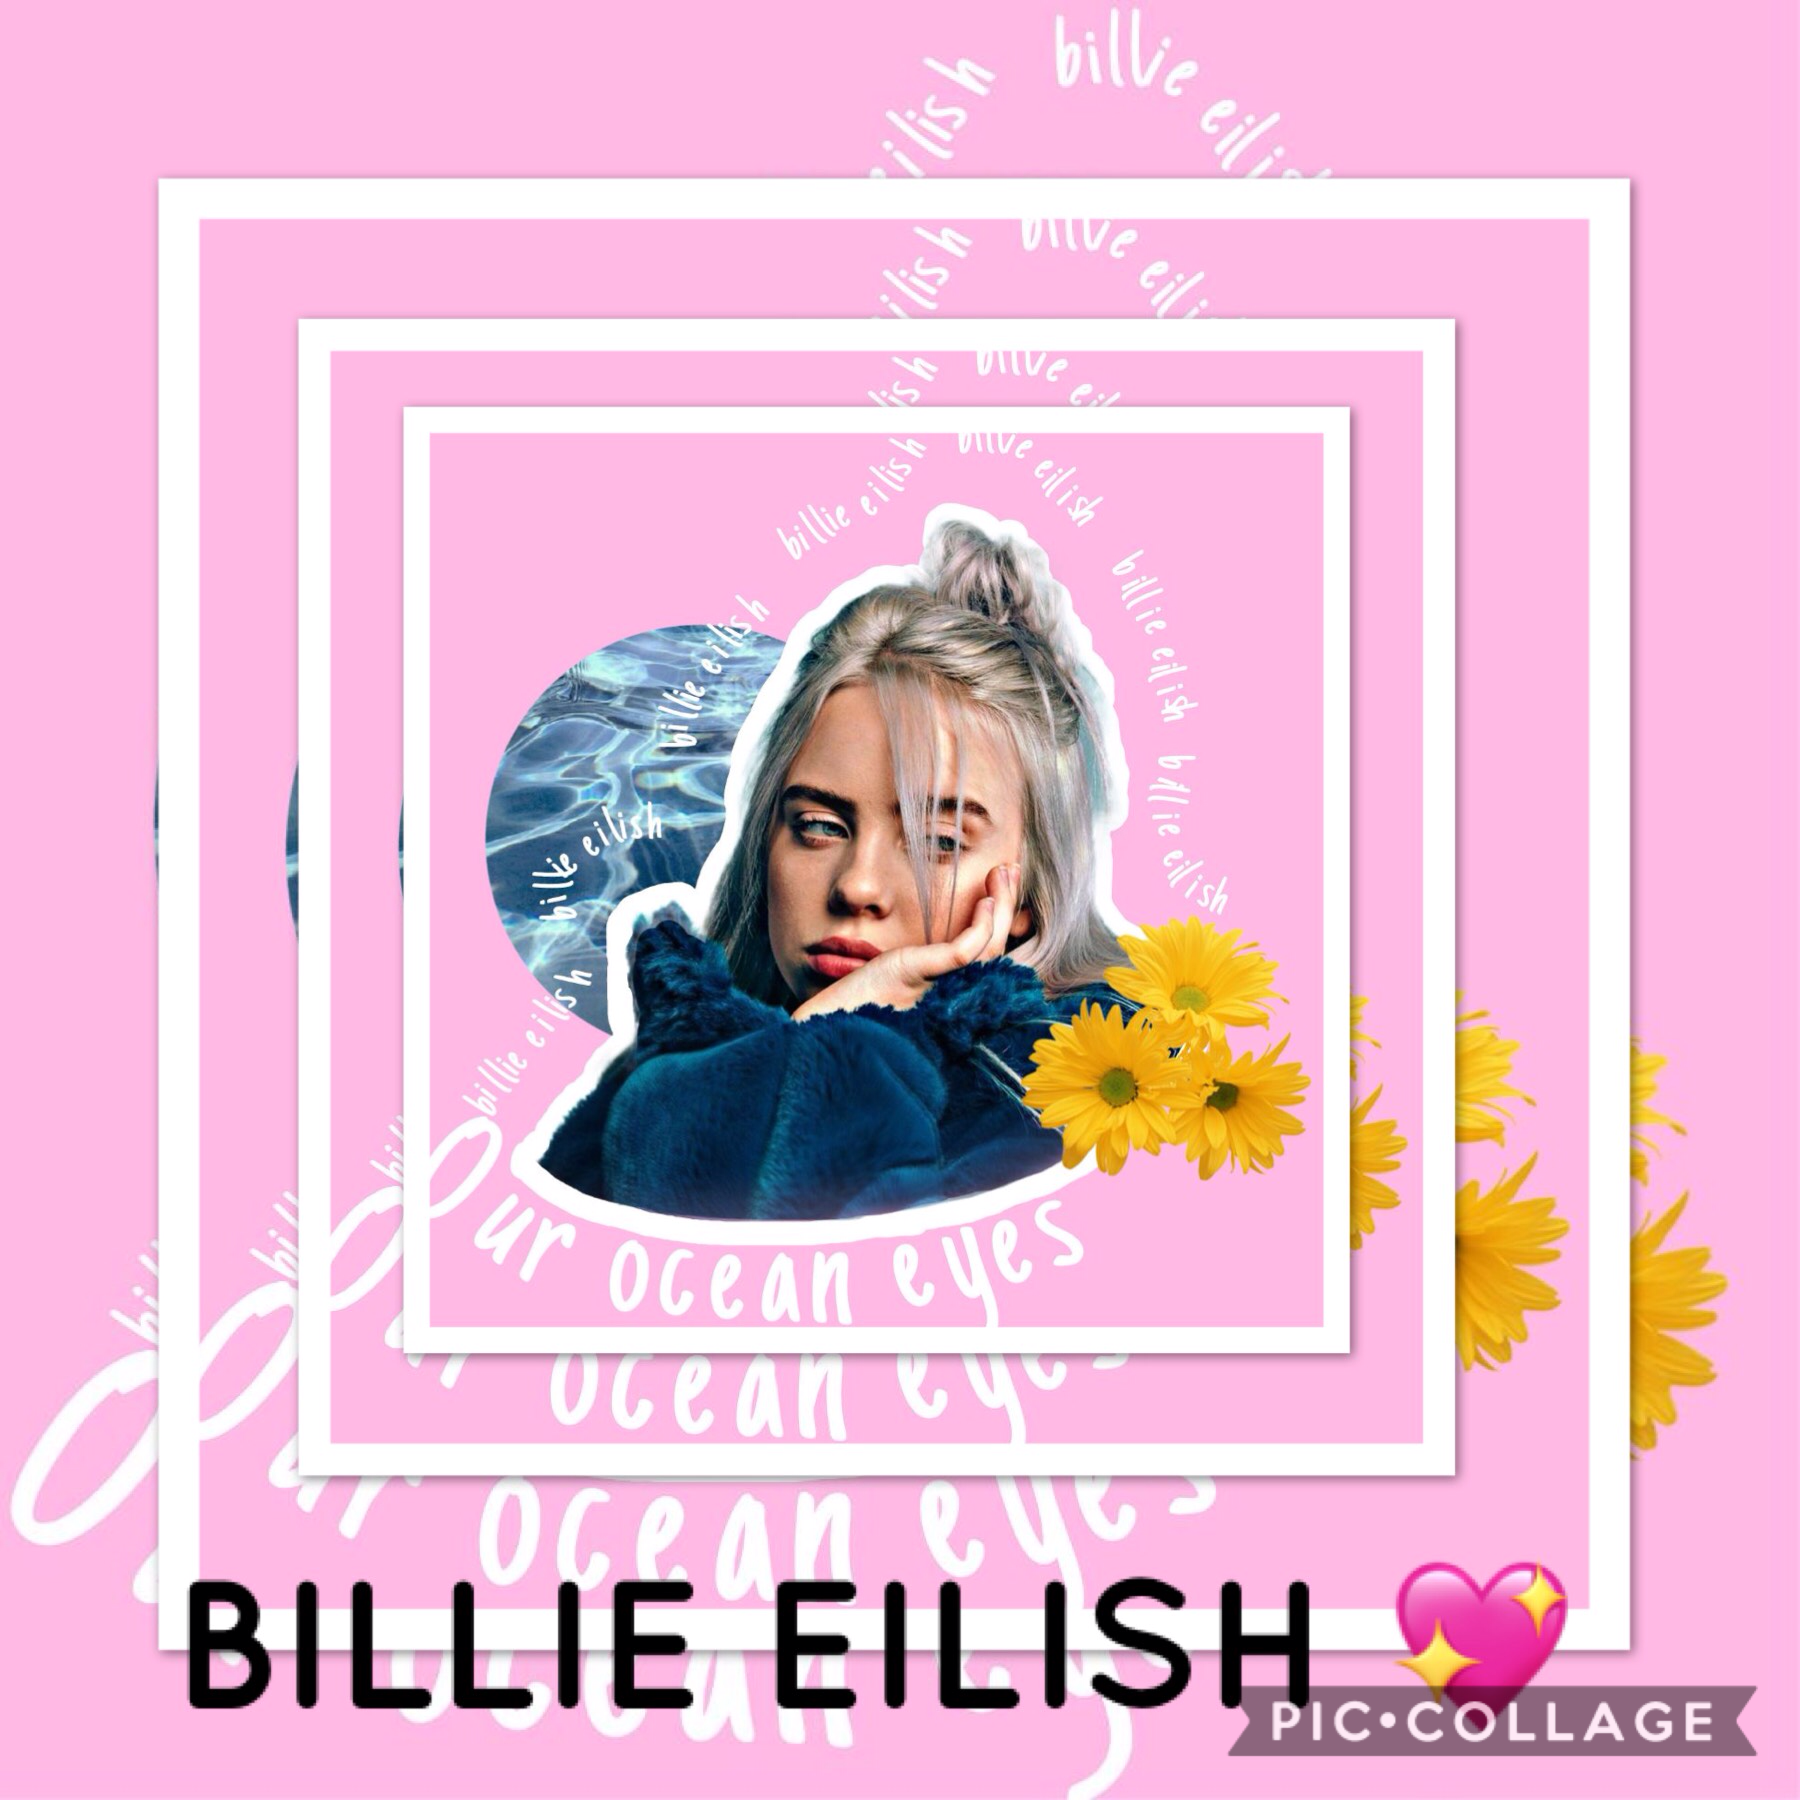 #BillieEilish 💖💖 comment who your favourite music artist 🎶